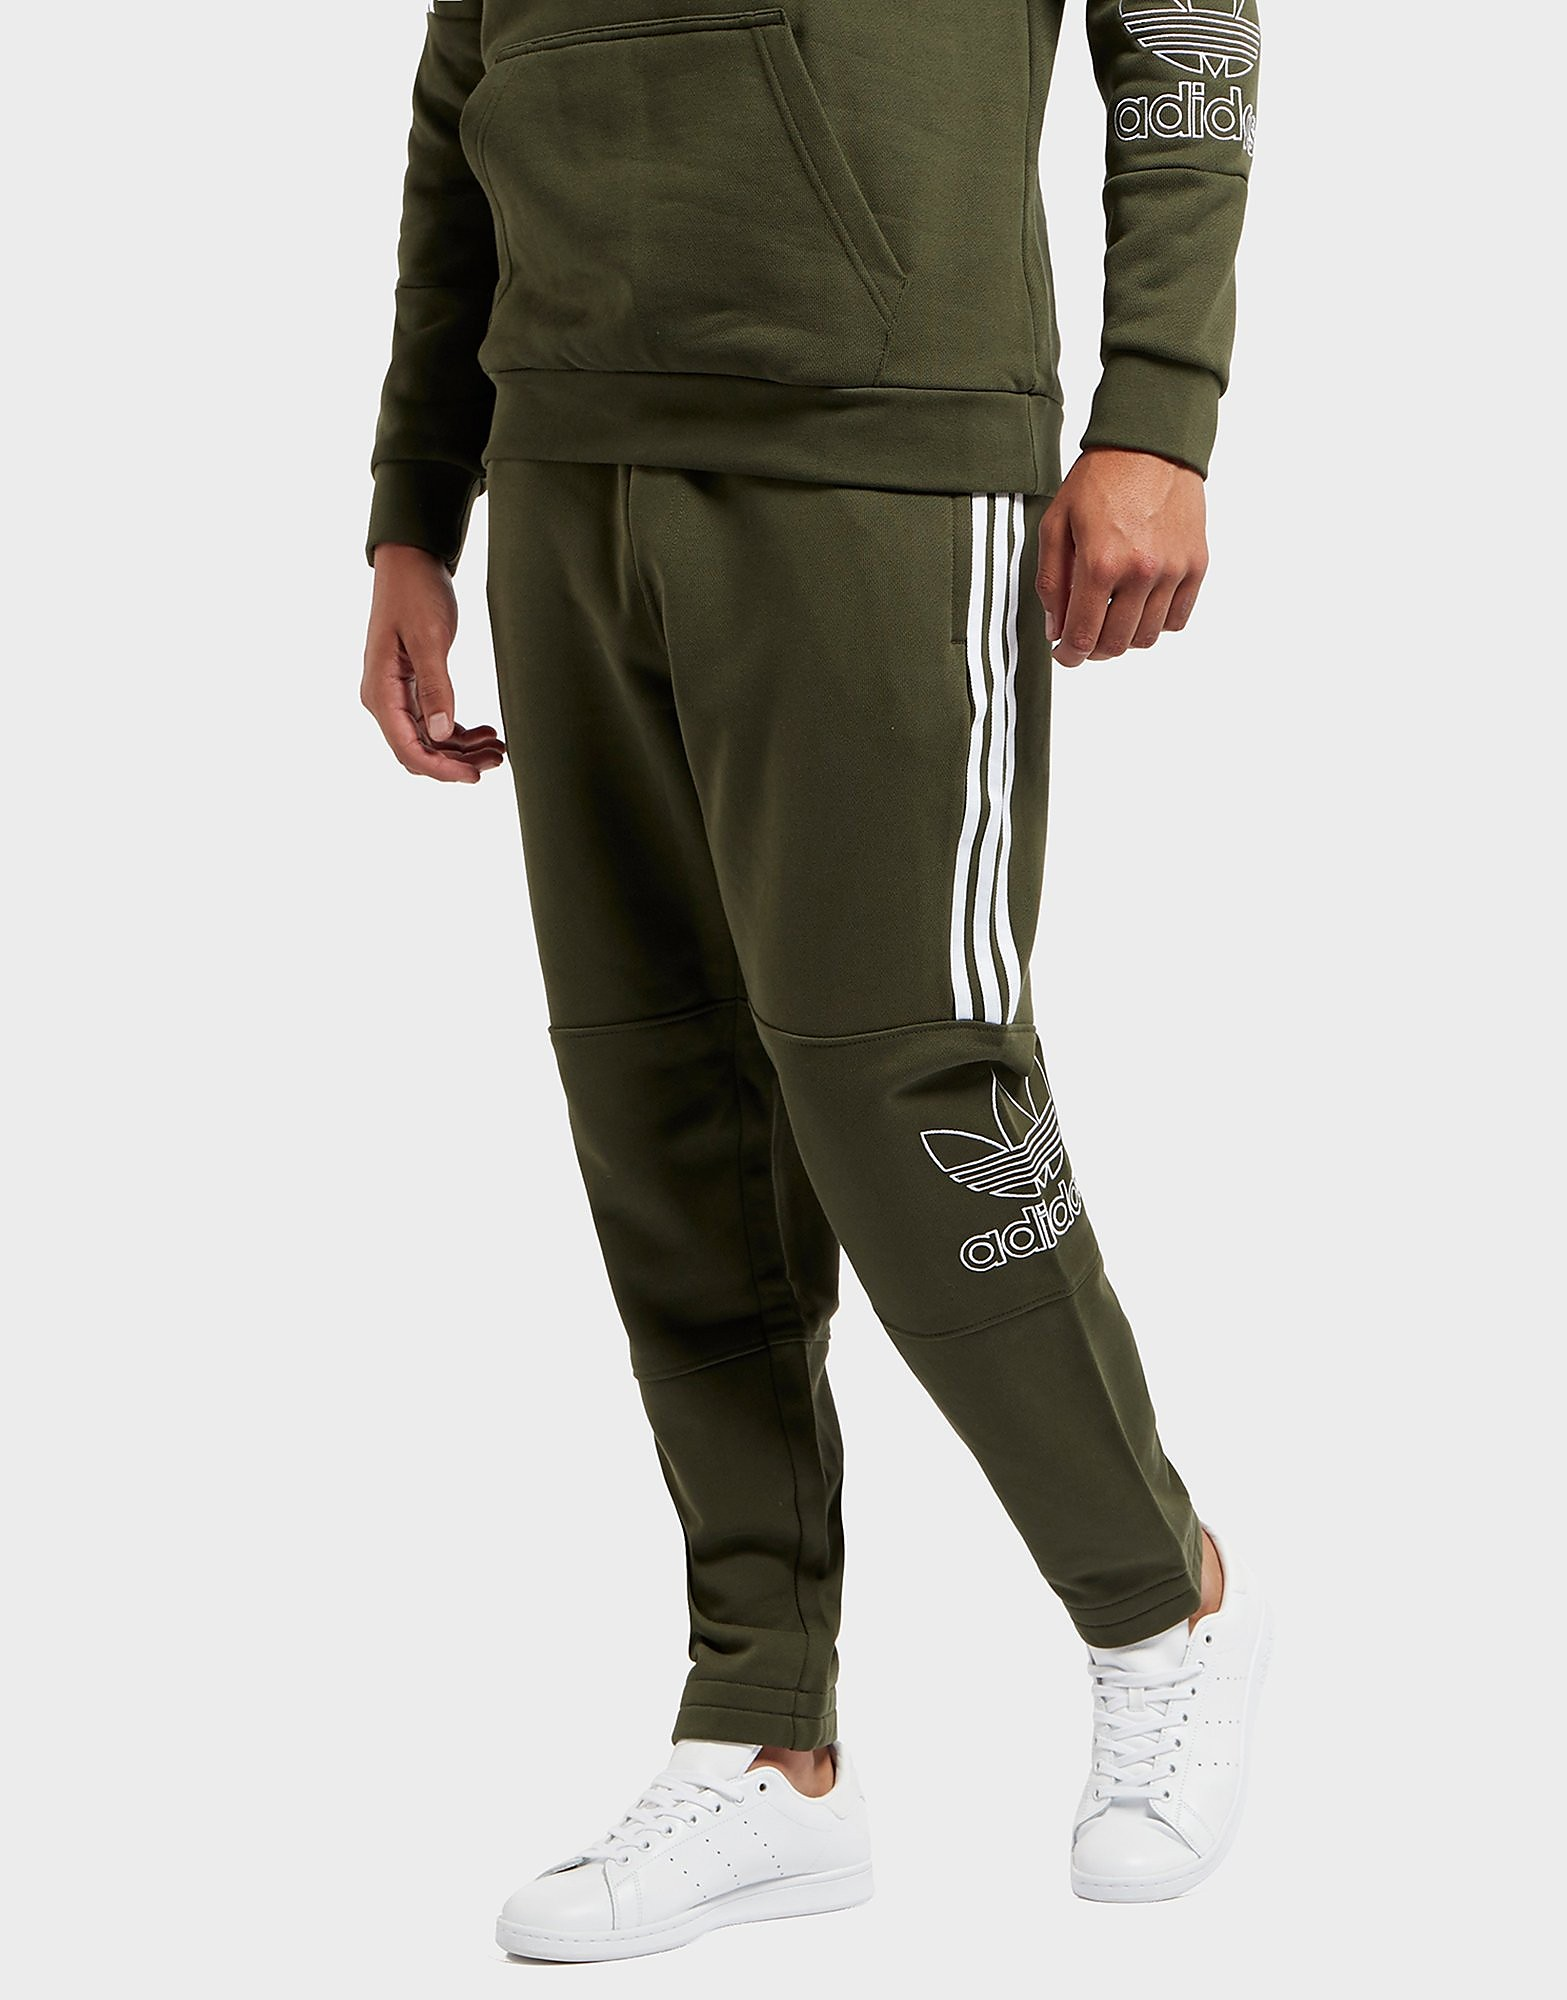 adidas originali pantaloni della tuta scotts maschili